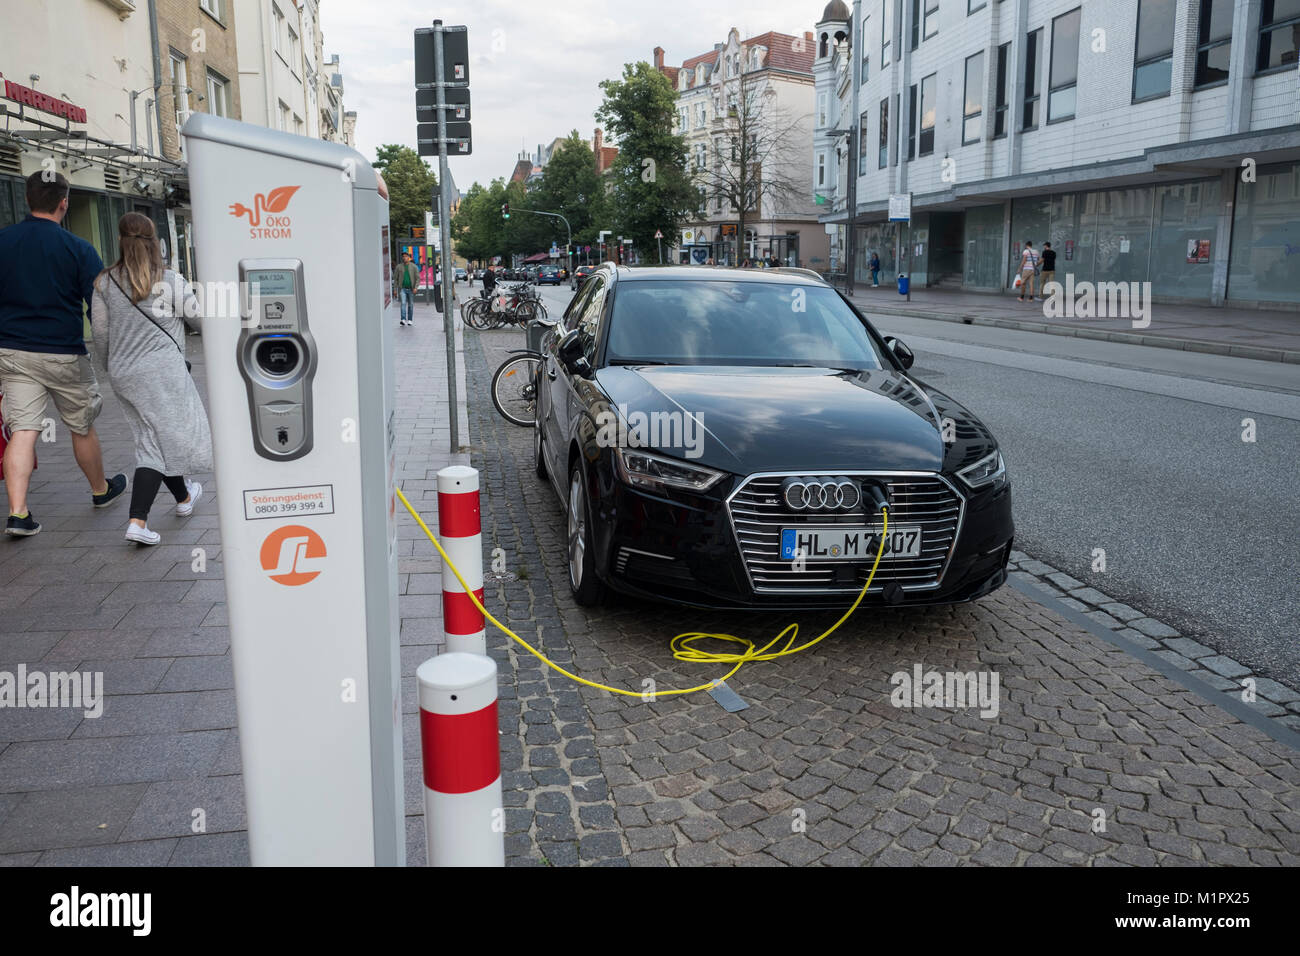 Charging station for electric cars, Lûbeck, Lybeck, Germany. Stock Photo